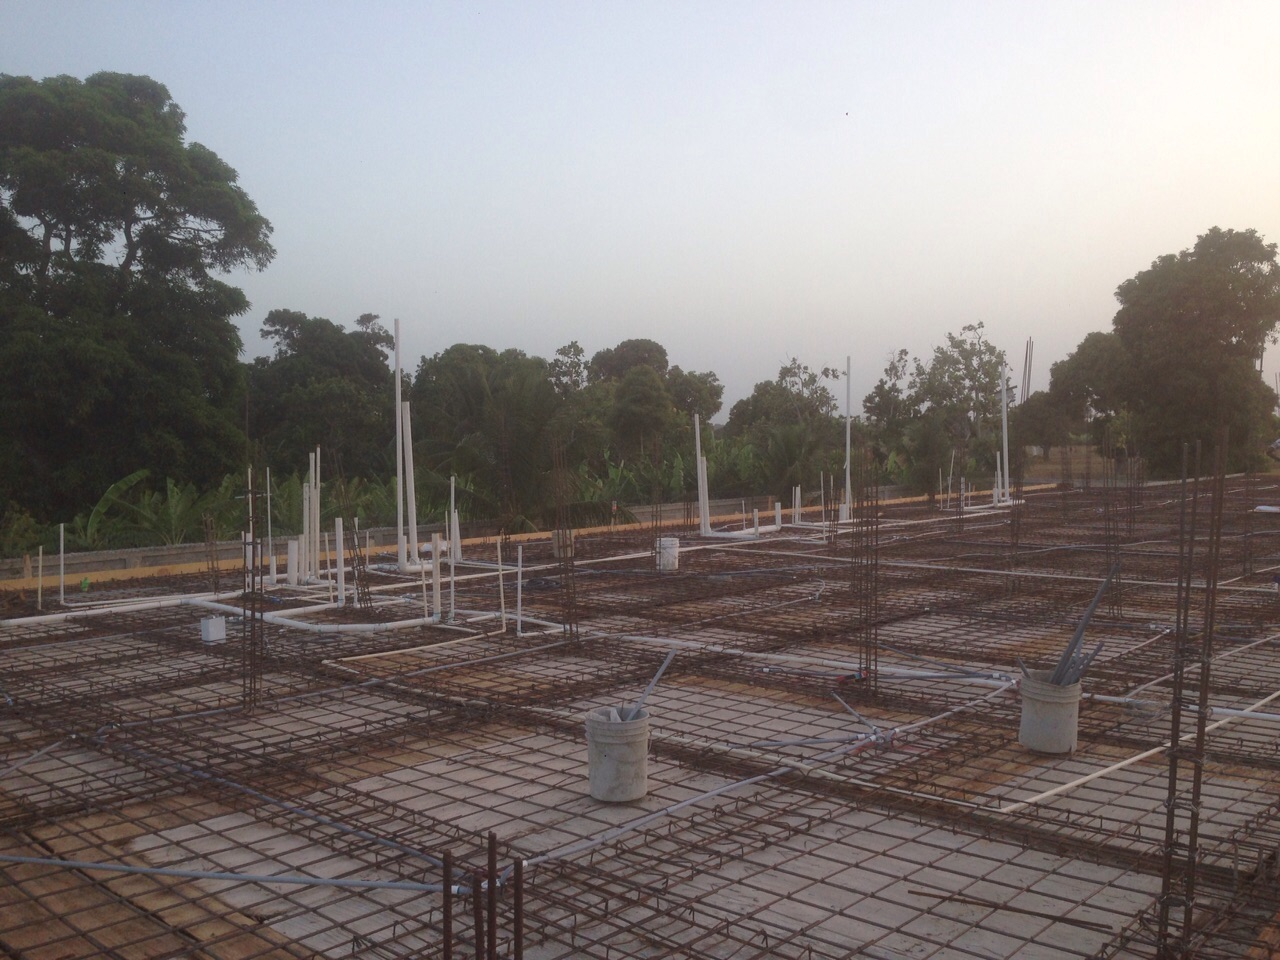 Guesthouse roof construction